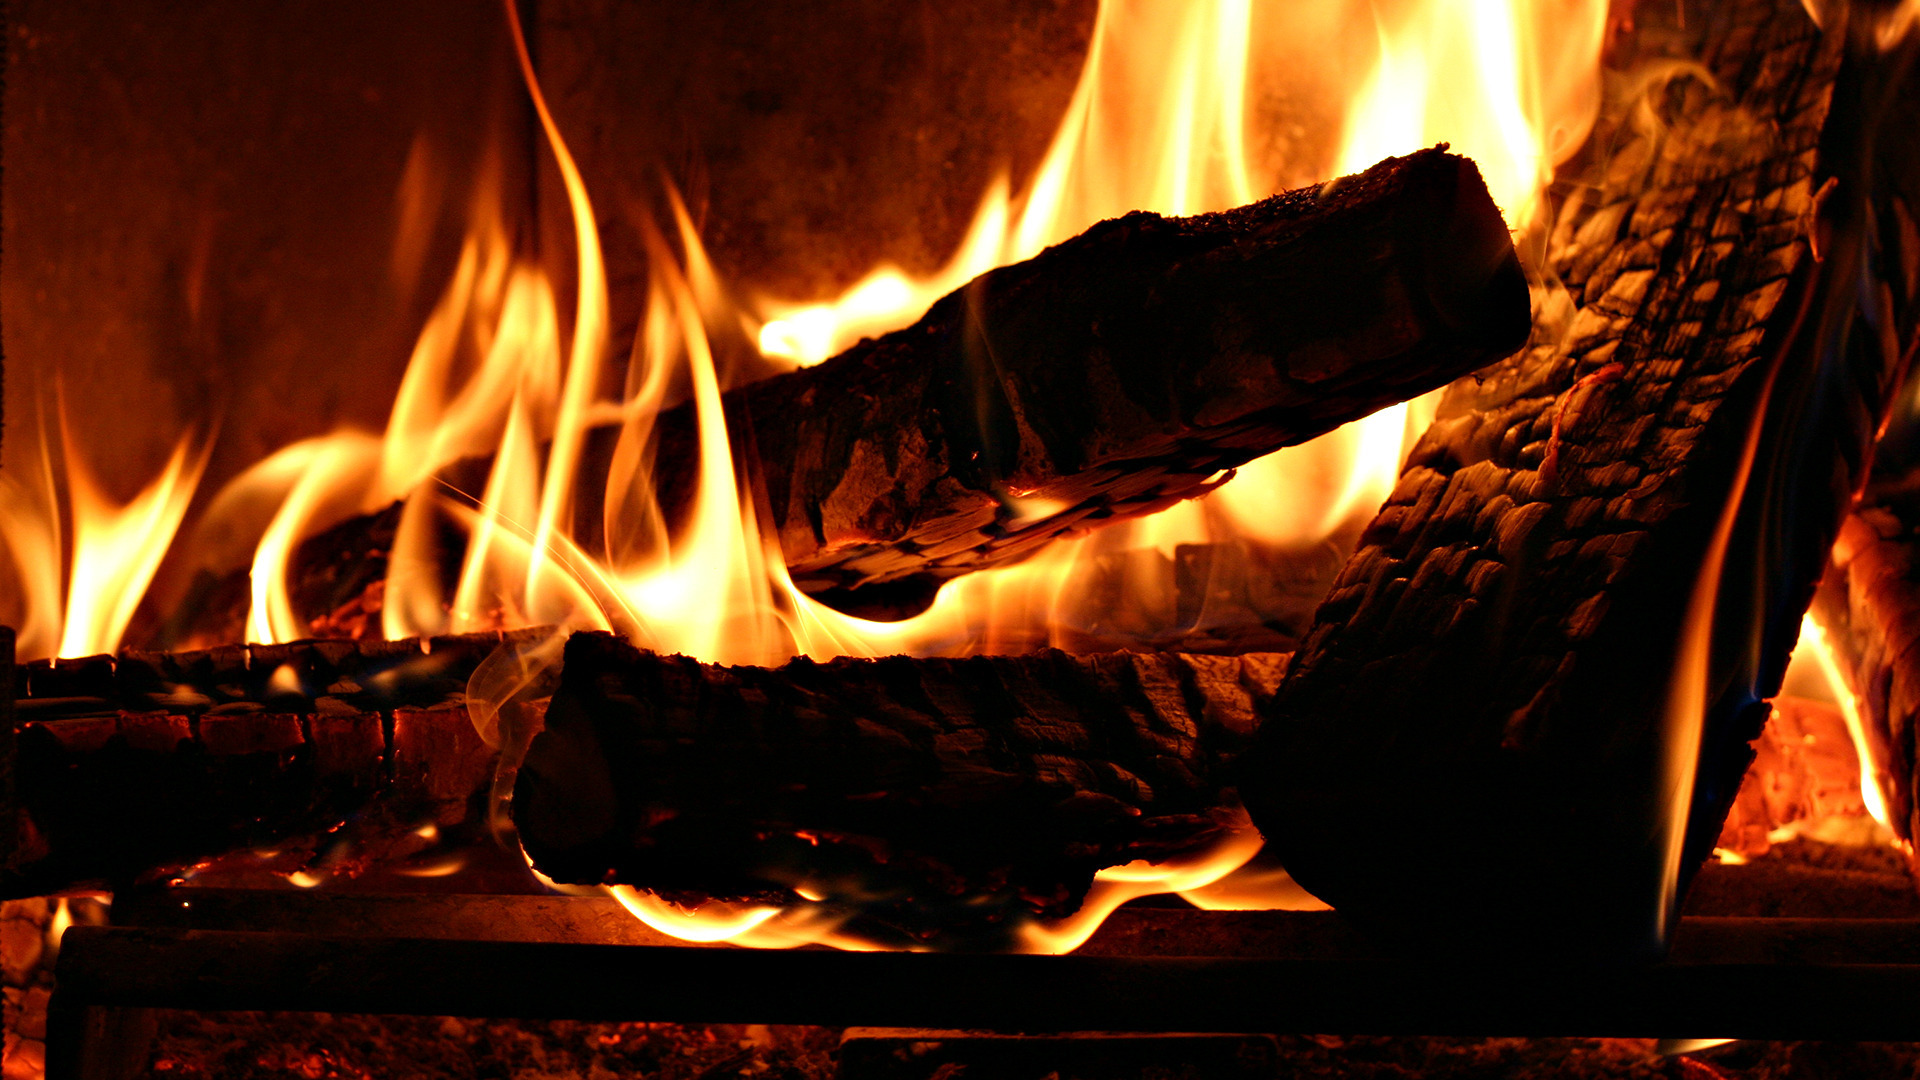 wallpaper.wiki-Fireplace-Wallpapers-PIC-WPE008676